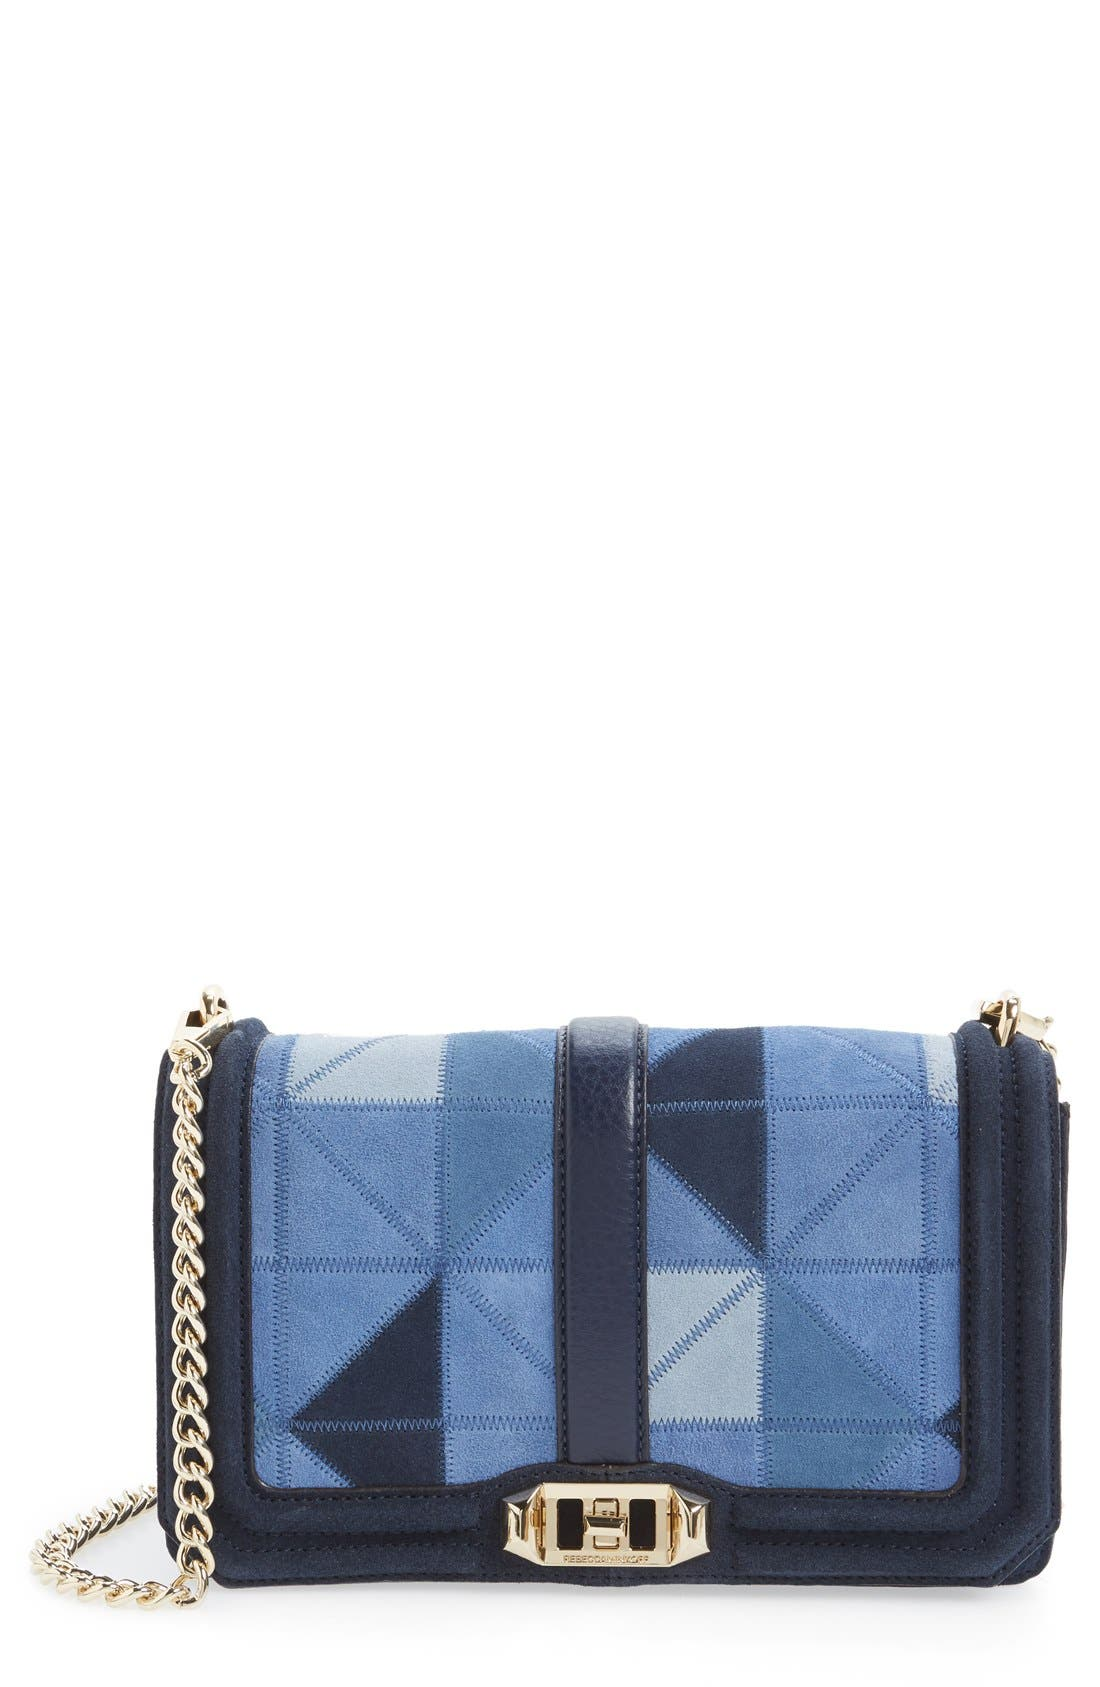 Alternate Image 1 Selected - Rebecca Minkoff 'Love' Patchwork Leather Crossbody Bag